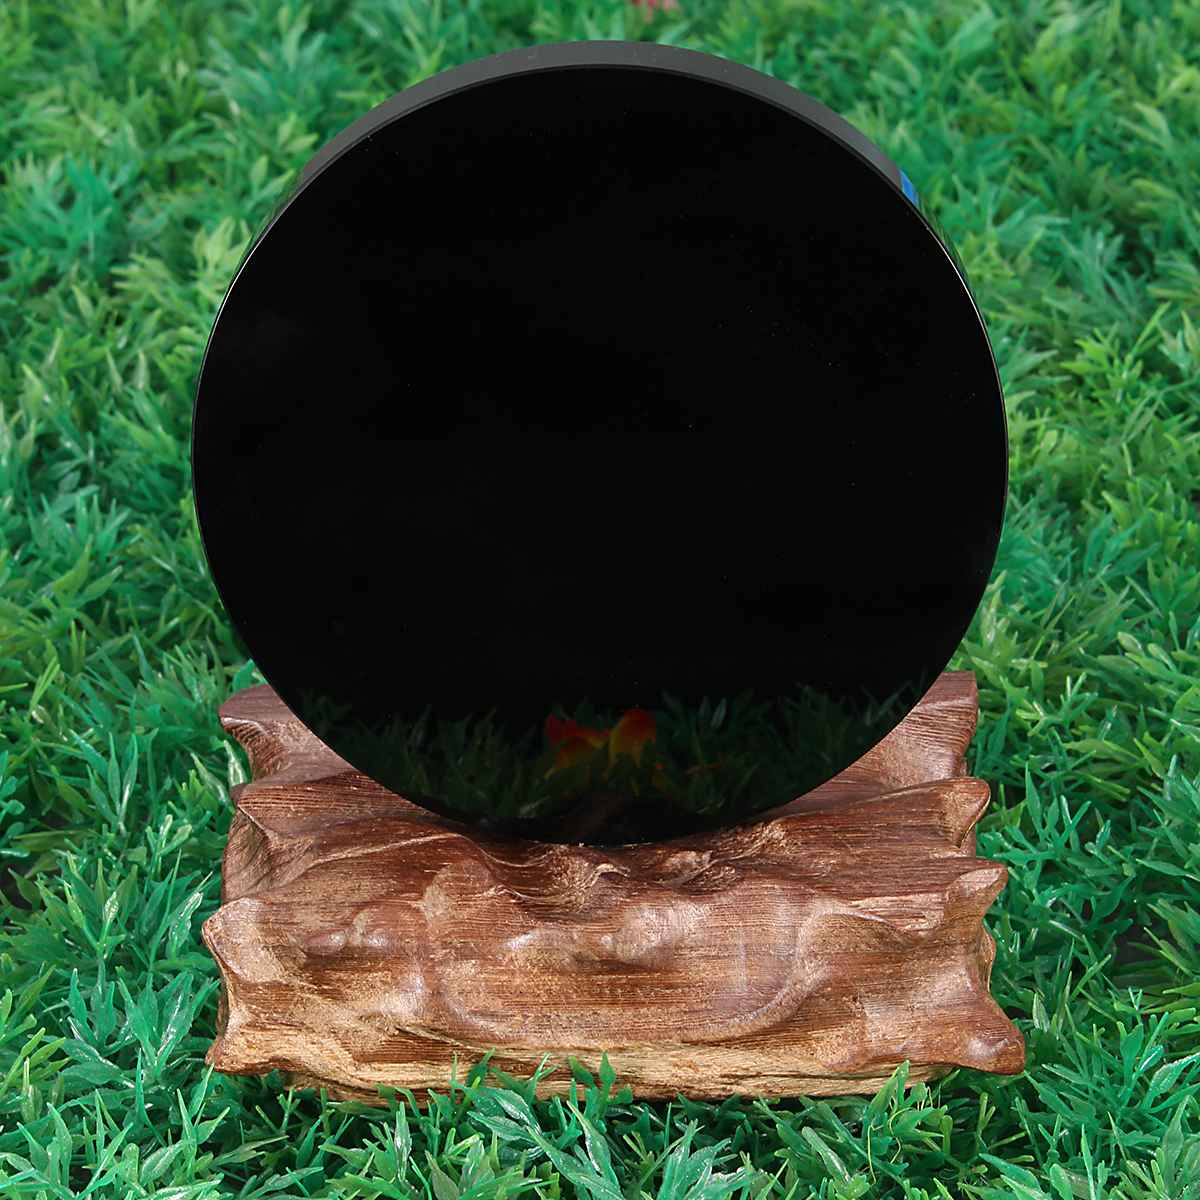 100mm Black Obsidian Scrying Mirror Crystal Gemstone Healing Stone Feng Shui Gift Home Shop Decoration Crfts Fashion